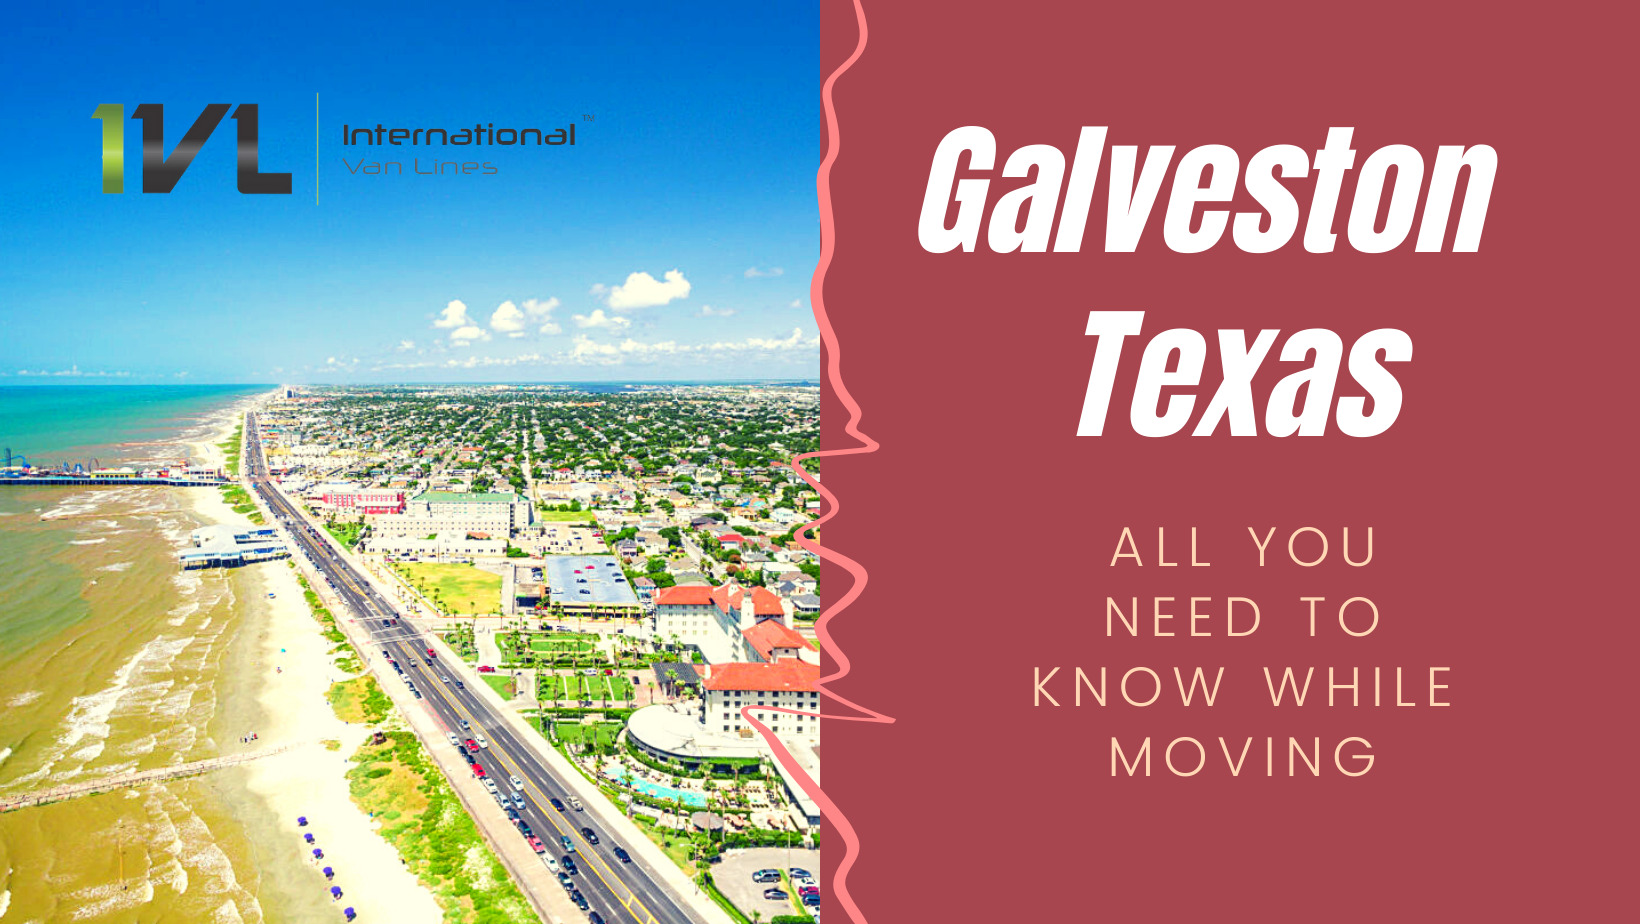 All you need to know about Galveston Texas – Moving Guide